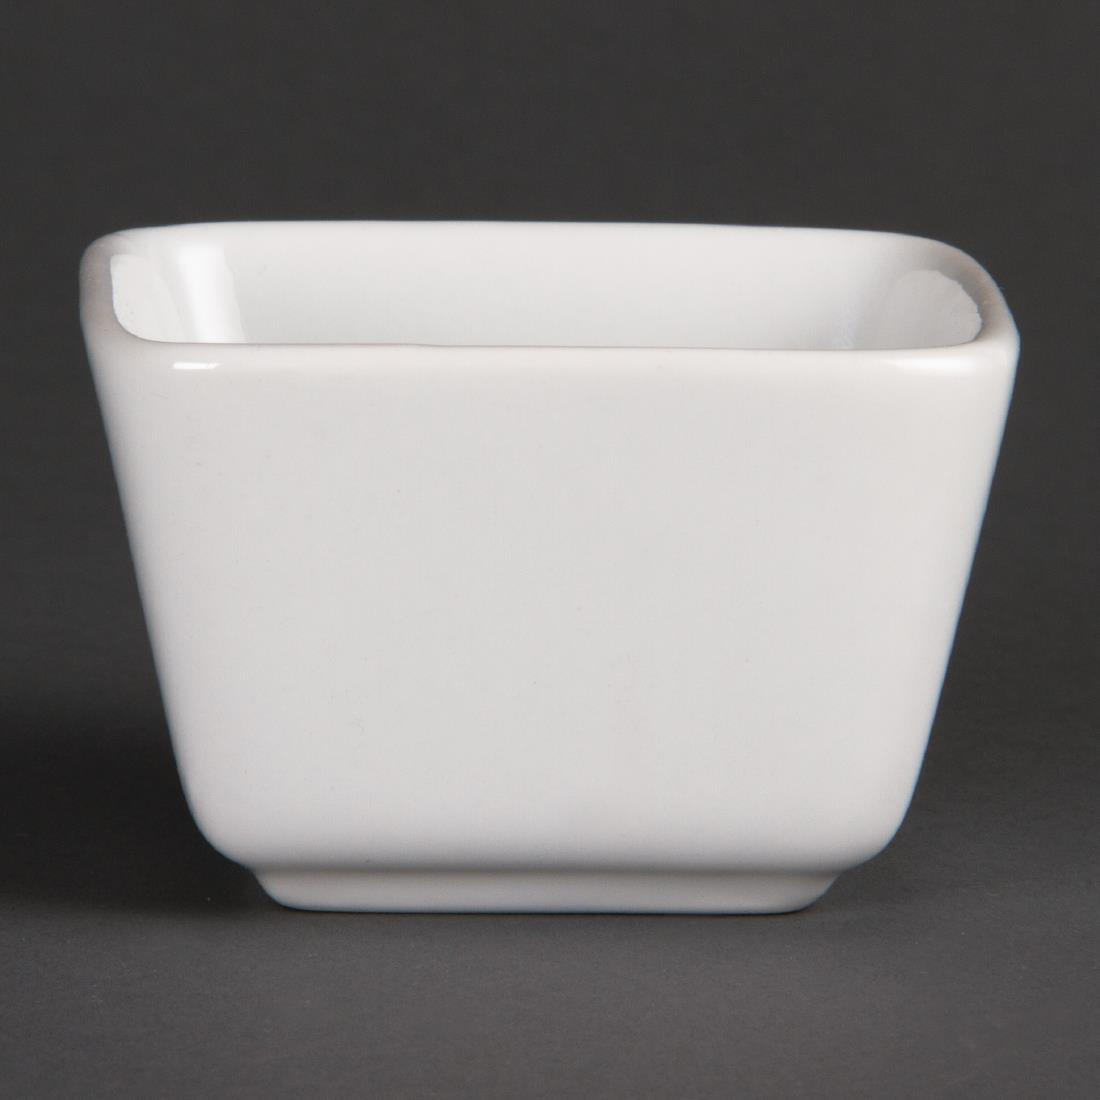 Olympia Whiteware Tall Square Mini Dishes 75mm